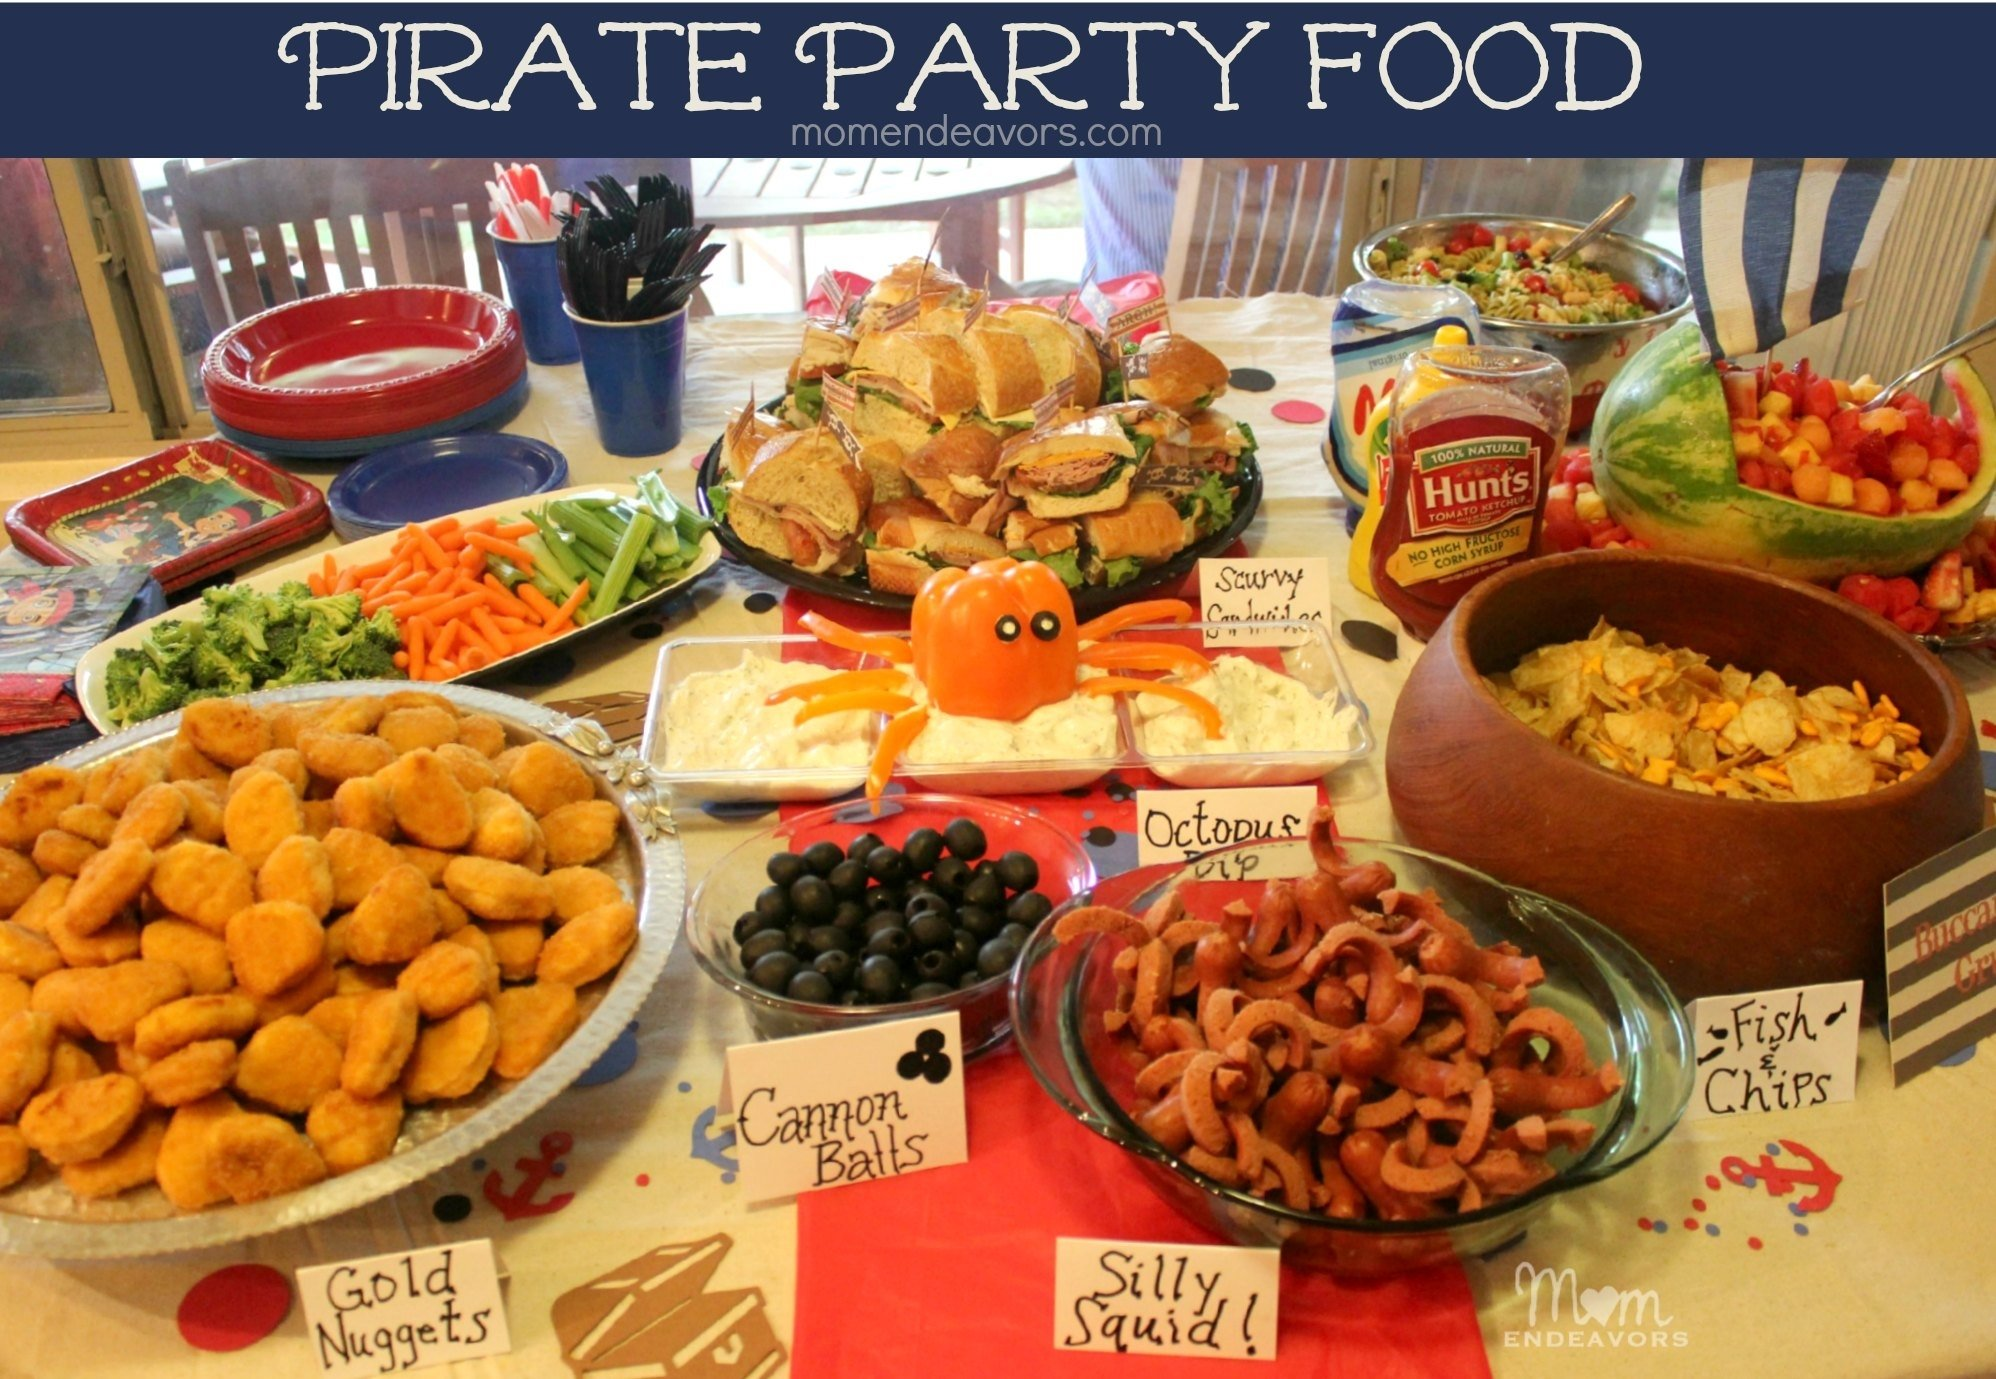 10 Great Catering Ideas For Birthday Party jake and the never land pirates birthday party food 3 2021